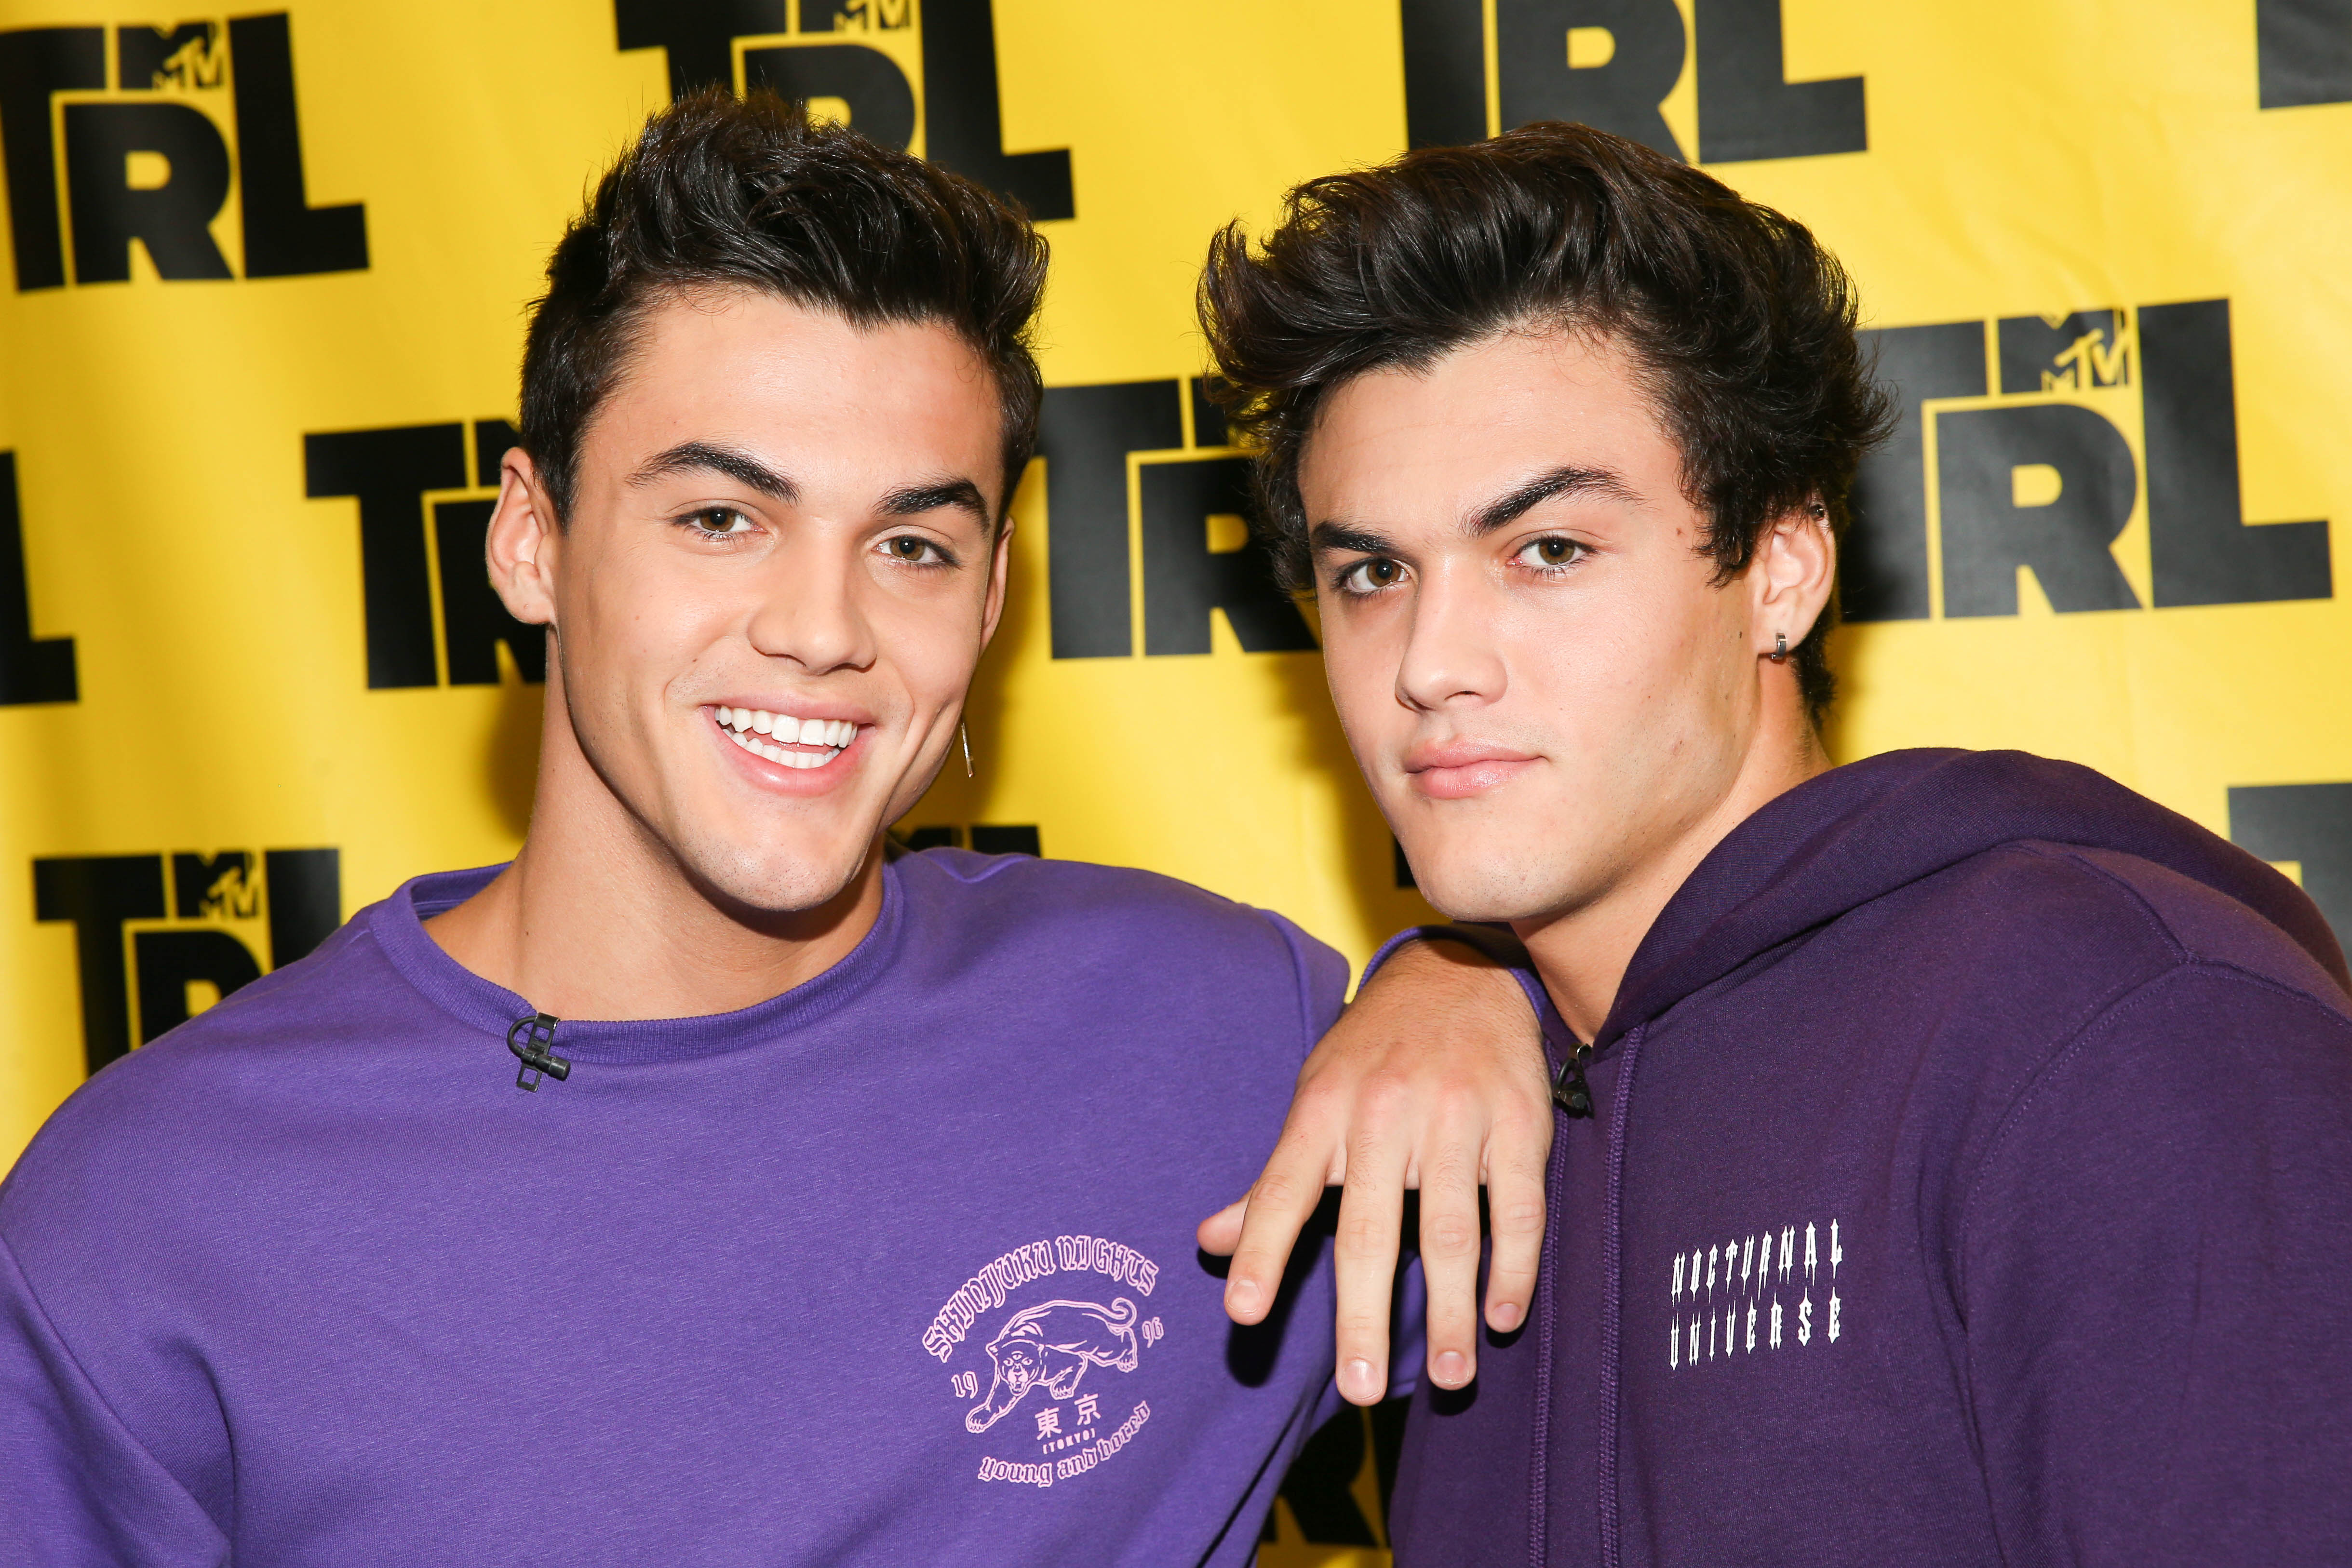 Dolan Twins Purity Rings Are Ethan And Grayson Dolan Christians